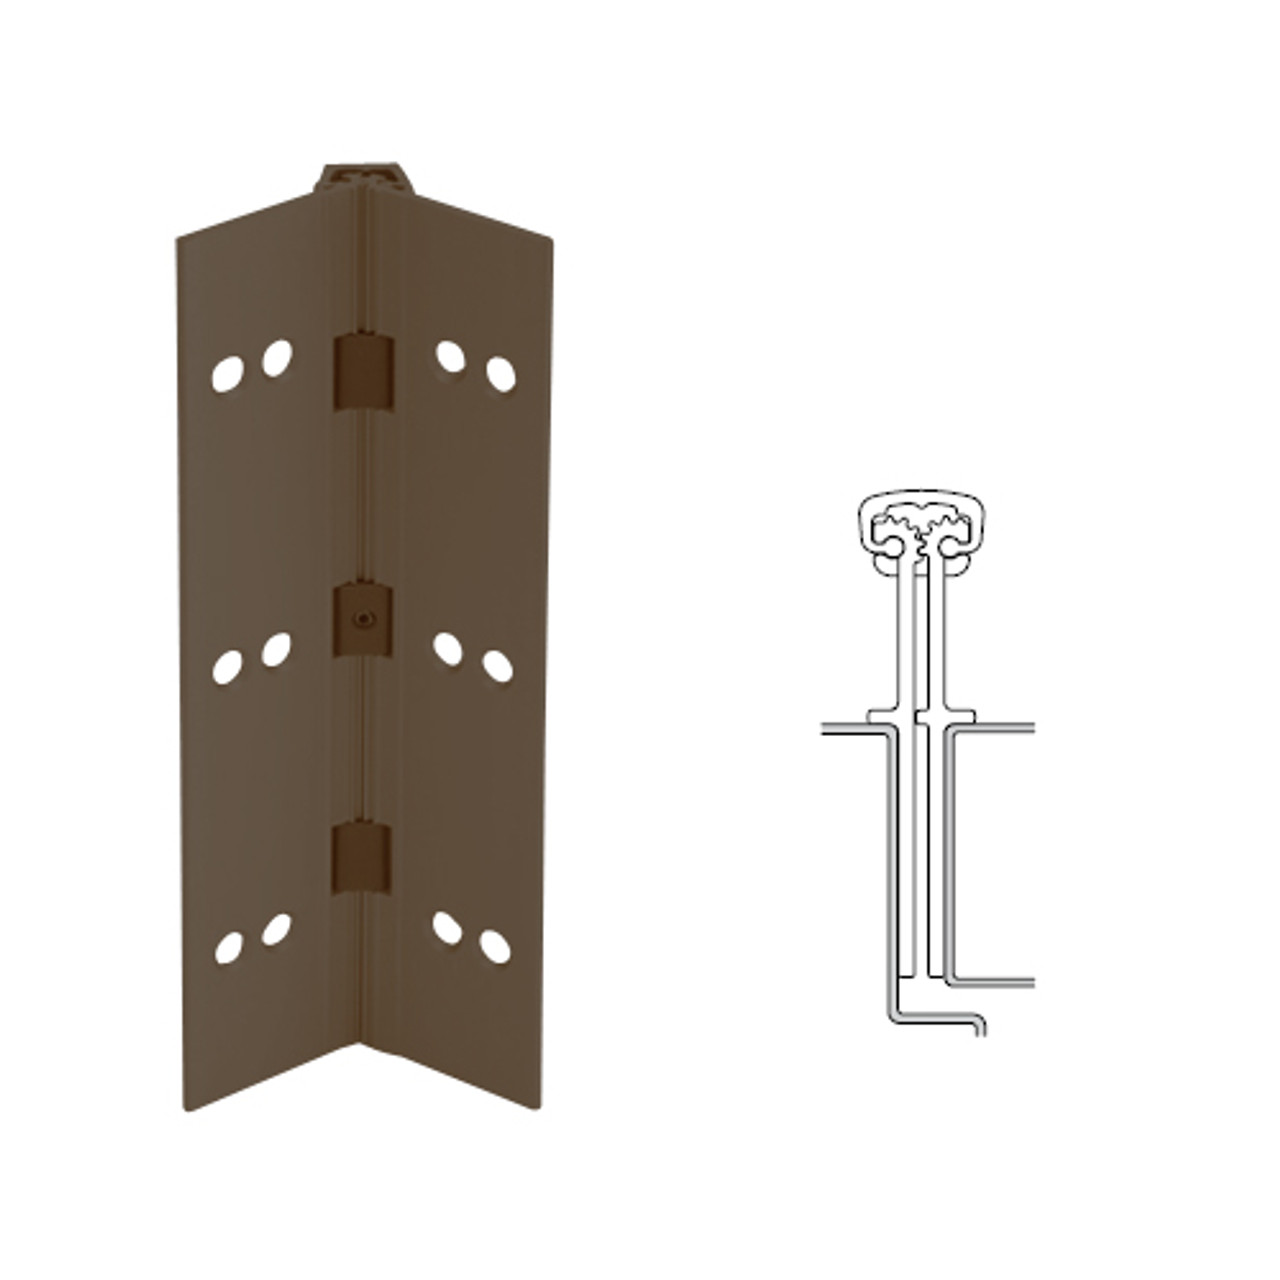 040XY-313AN-85-HT IVES Full Mortise Continuous Geared Hinges with Hospital Tip in Dark Bronze Anodized